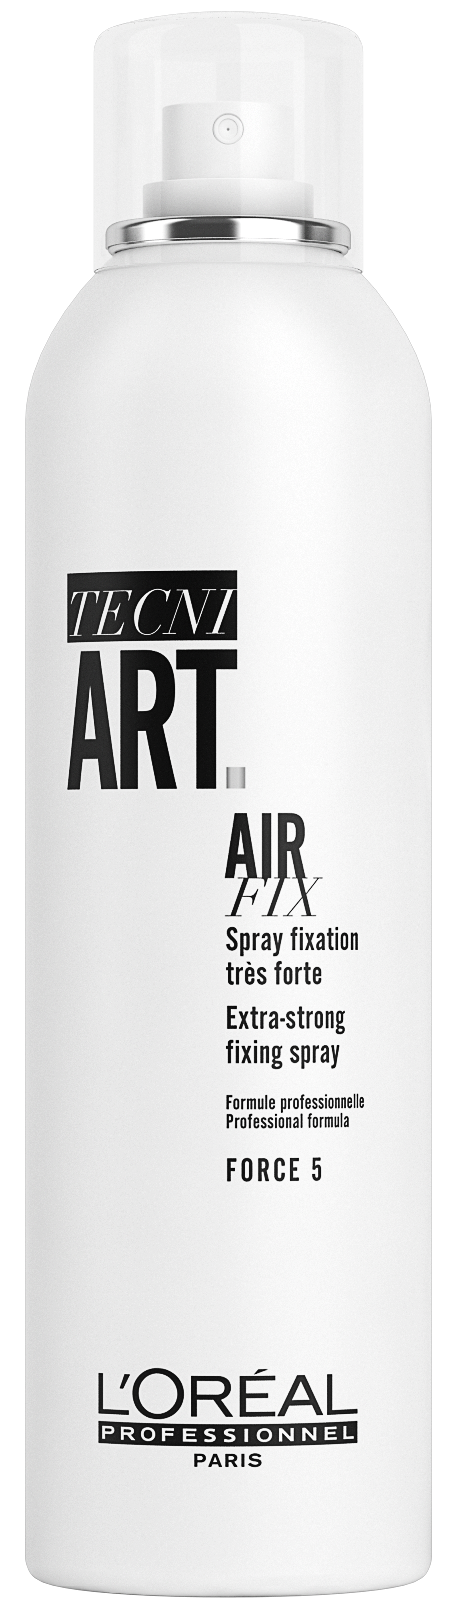 Air fix - Tecniart 400ml